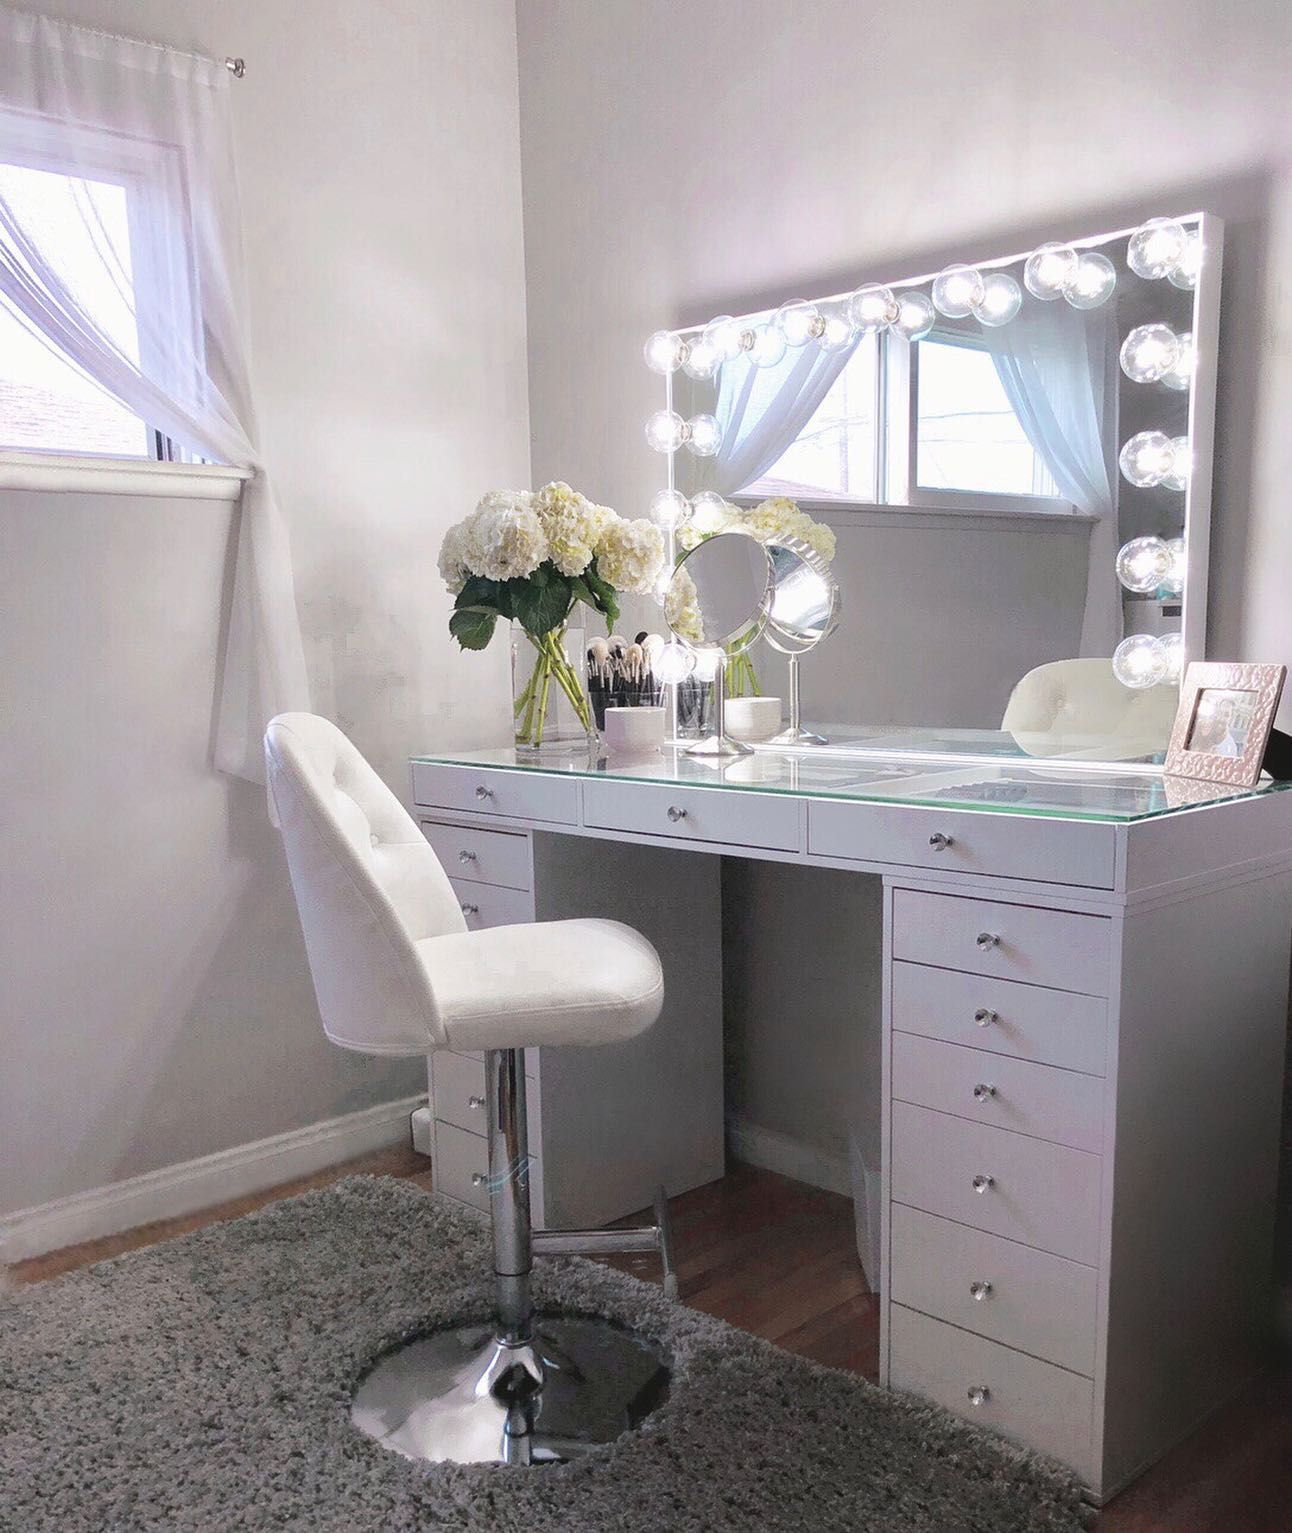 The extravagant Impressions Vanity® Hollywood Glow® Pro